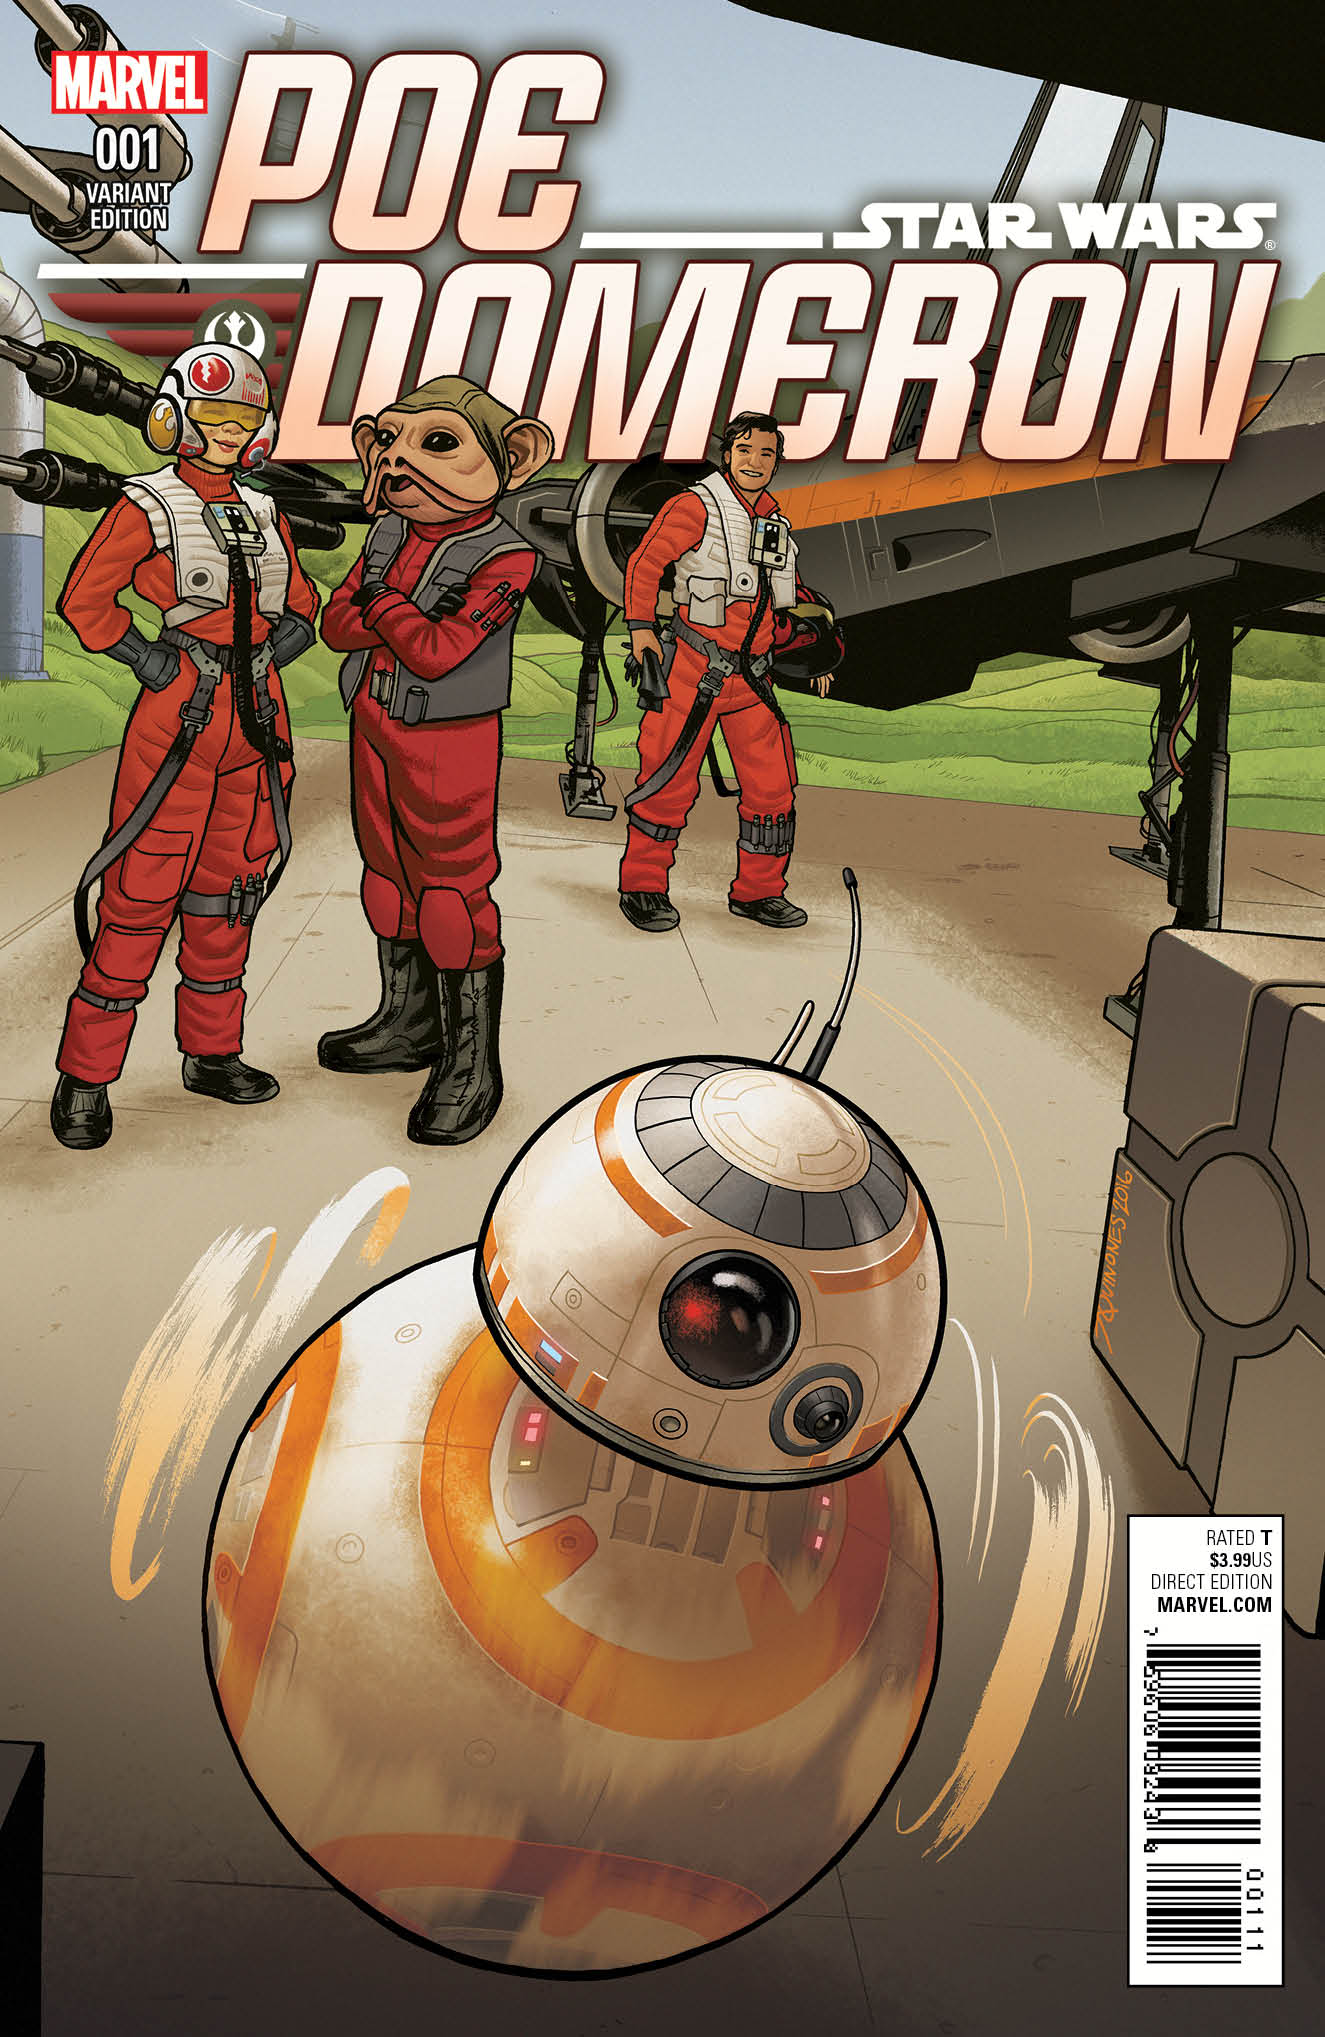 BB-8 Variant by Joe Quinones